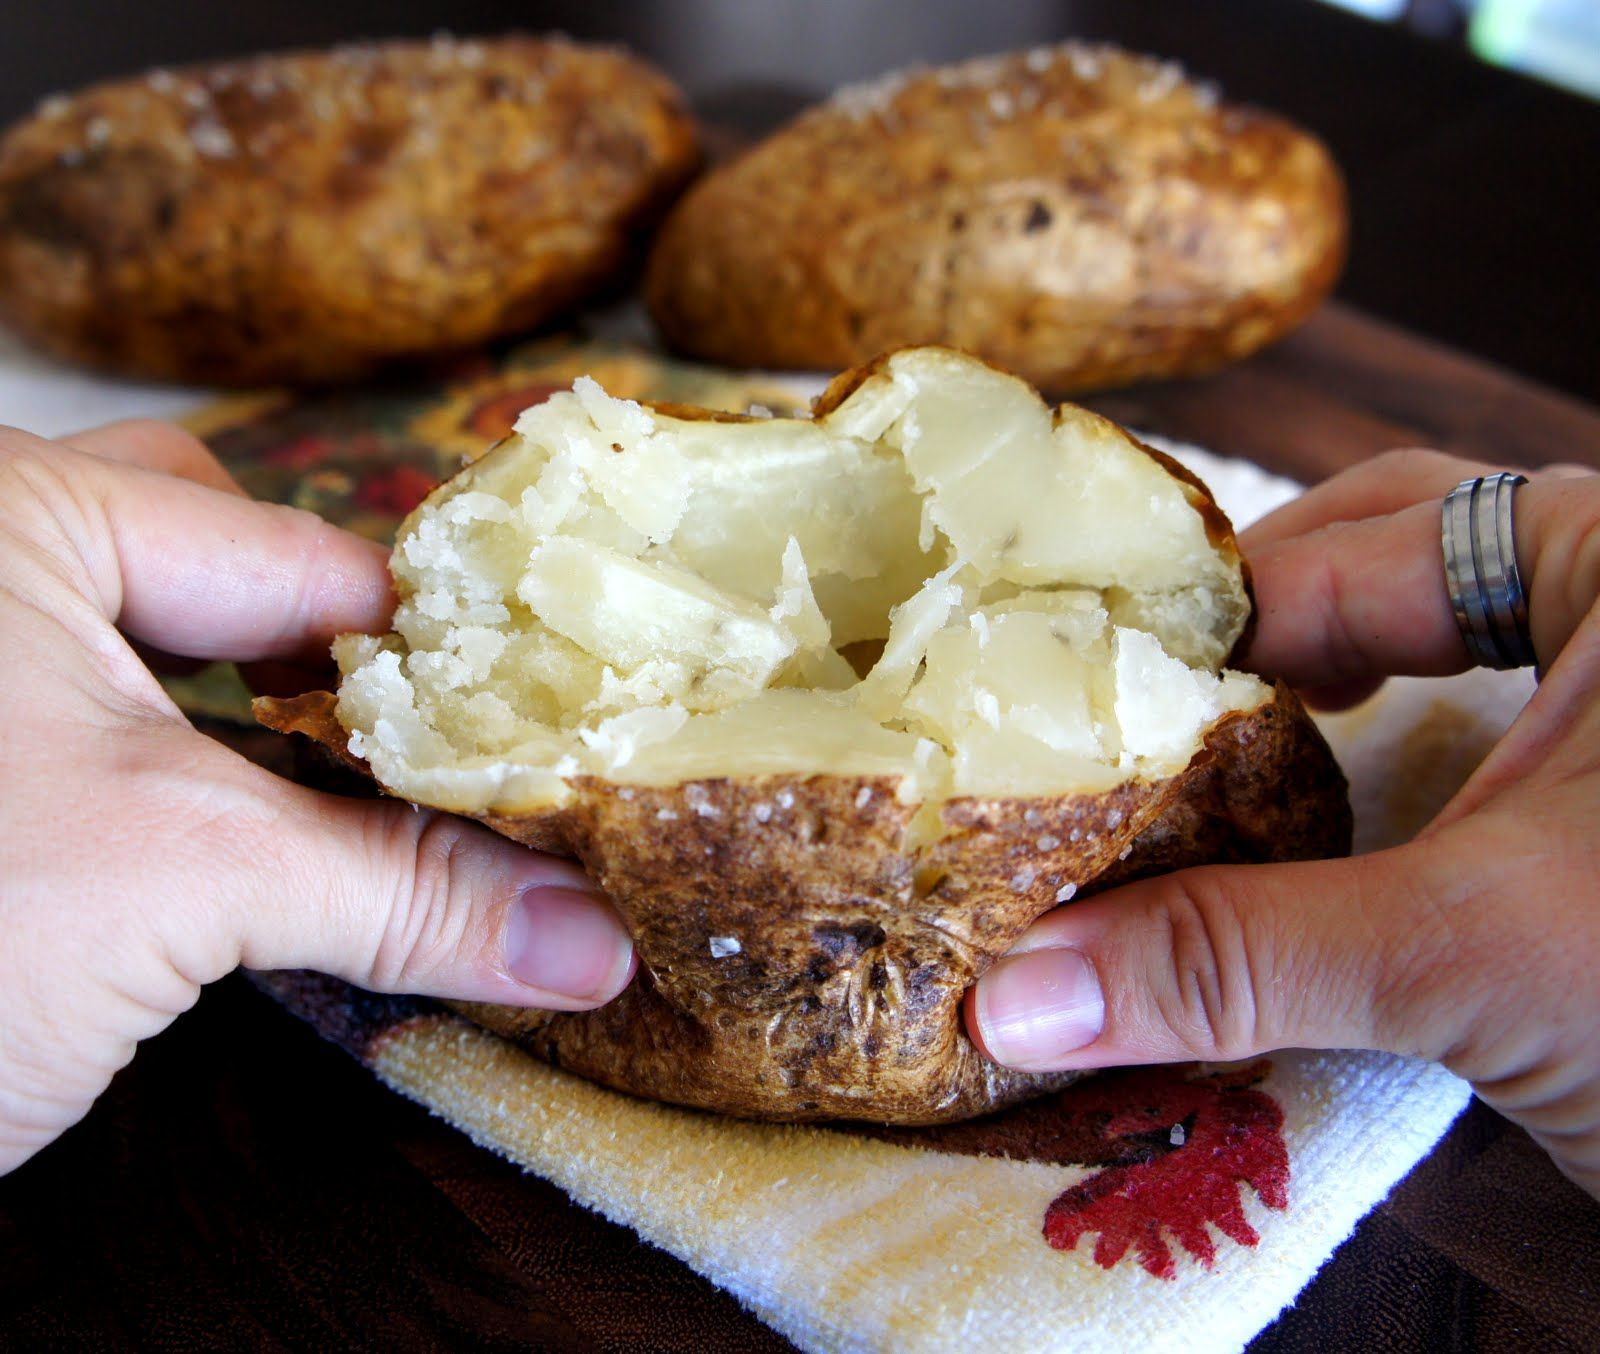 There are several methods to baking a potato, but this is my favorite because the potato skin is crispy and salty and the insides are soft and fluffy.